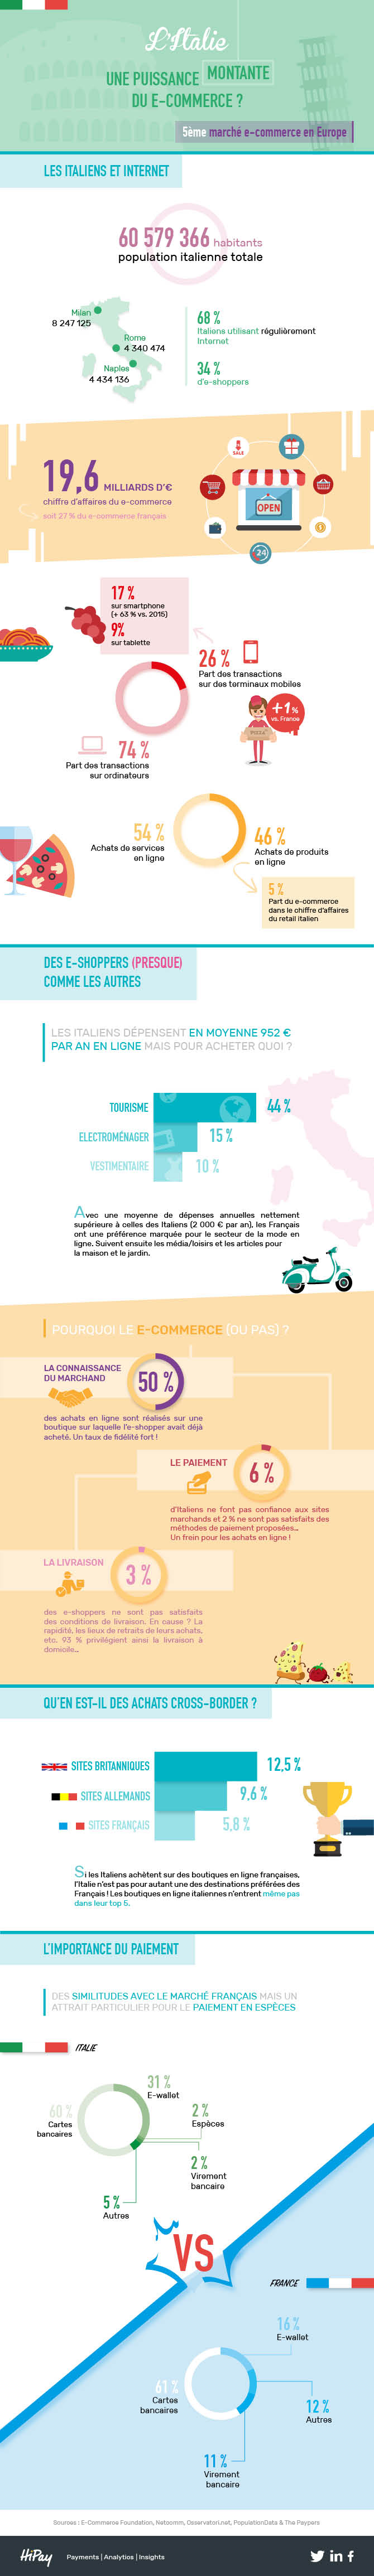 Infographie HiPay Italie.